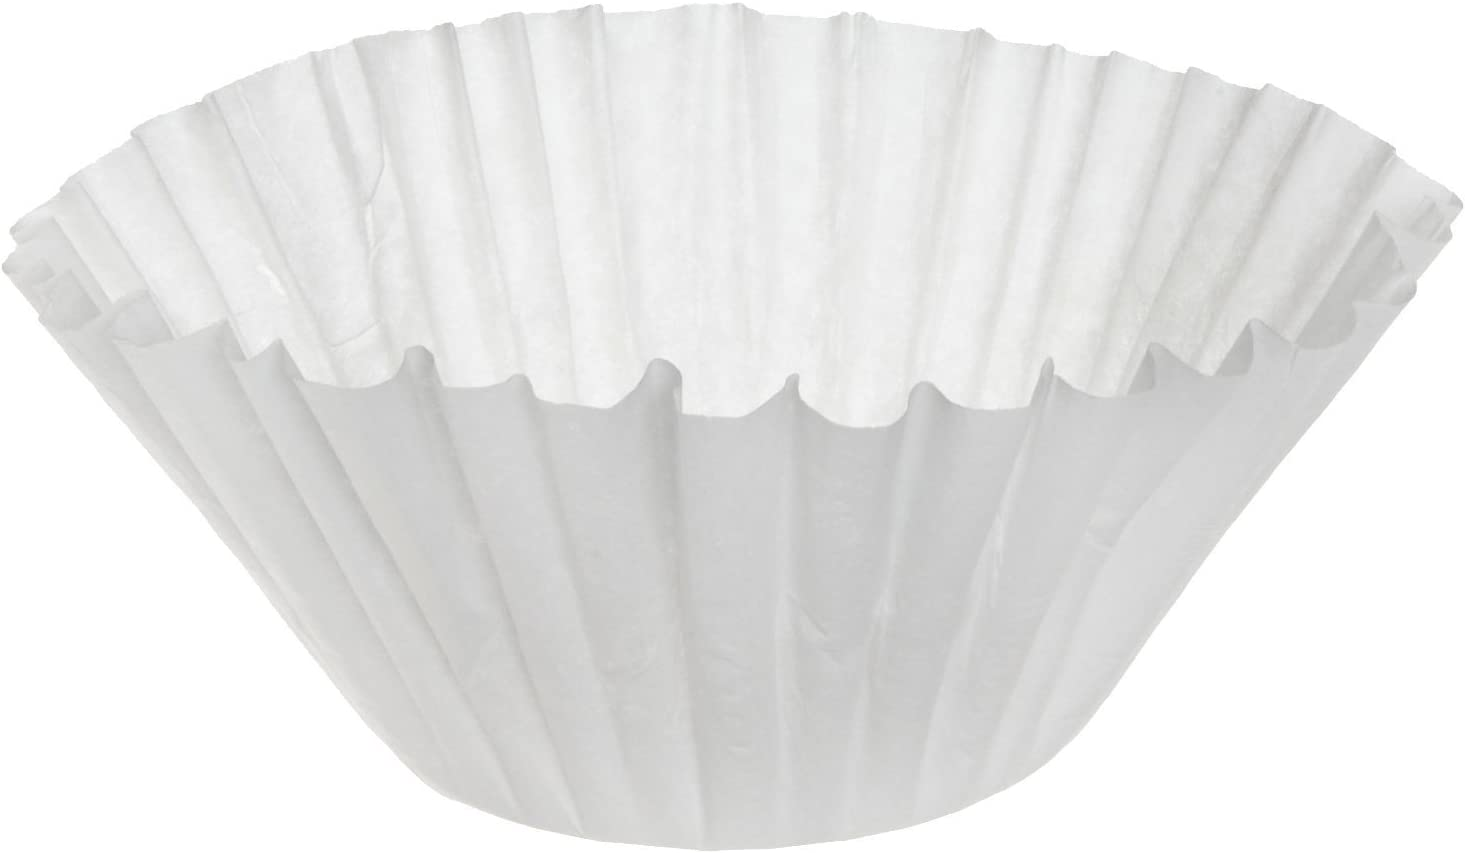 BUNN 1M5002 Commercial Coffee Filters, 12-Cup Size RWShW, 2 Packs